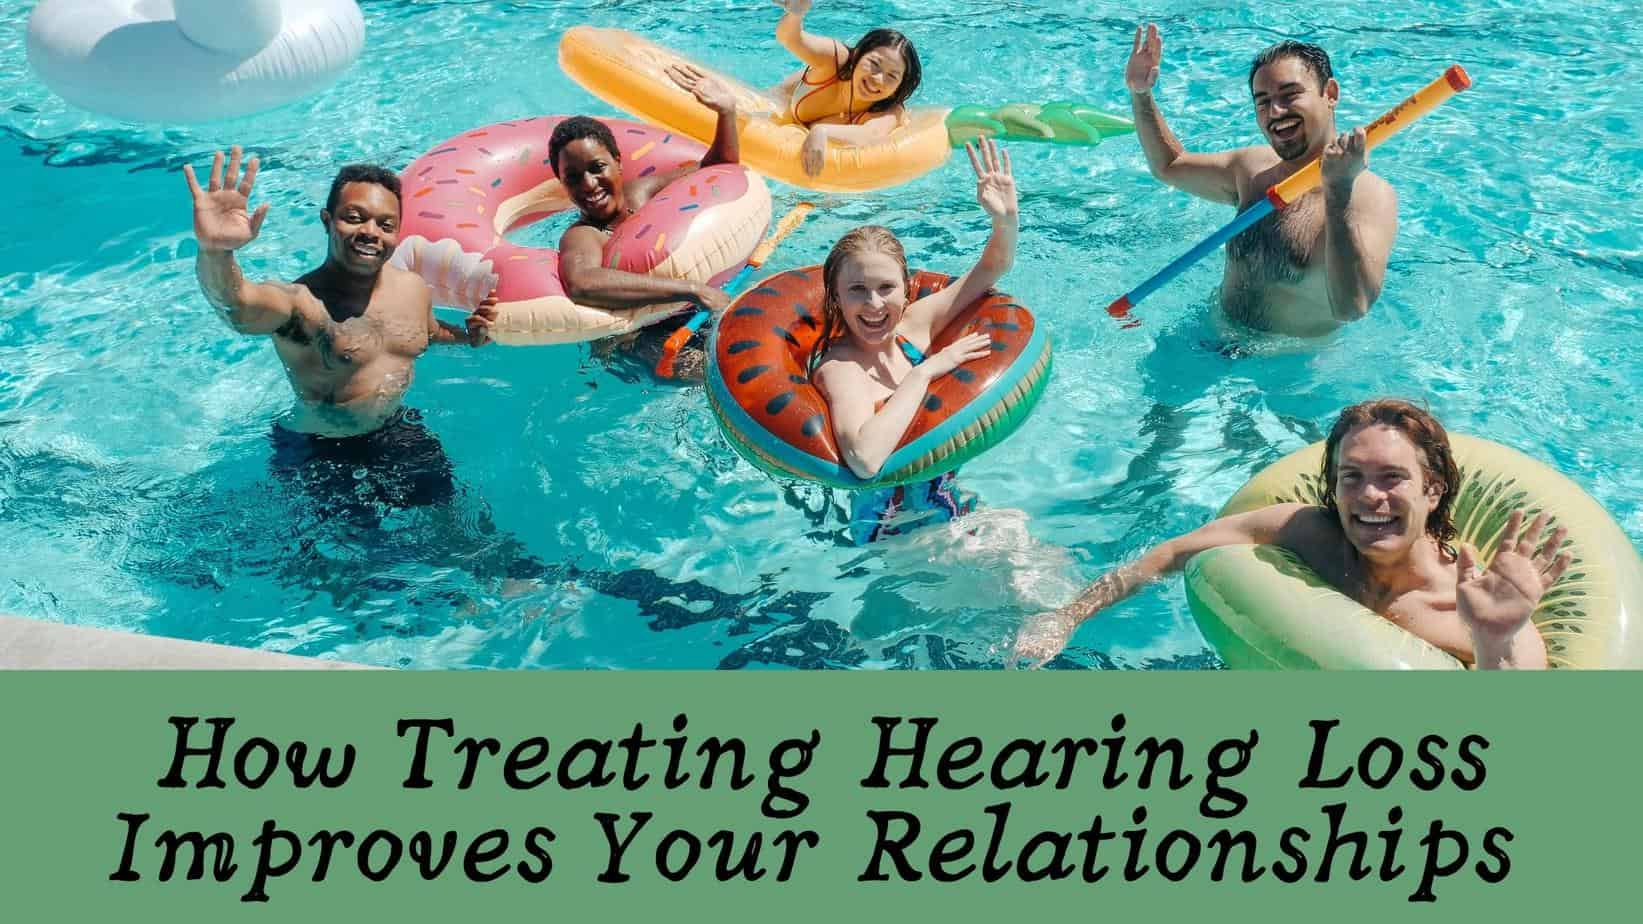 How-Treating-Hearing-Loss-Improves-Your-Relationships